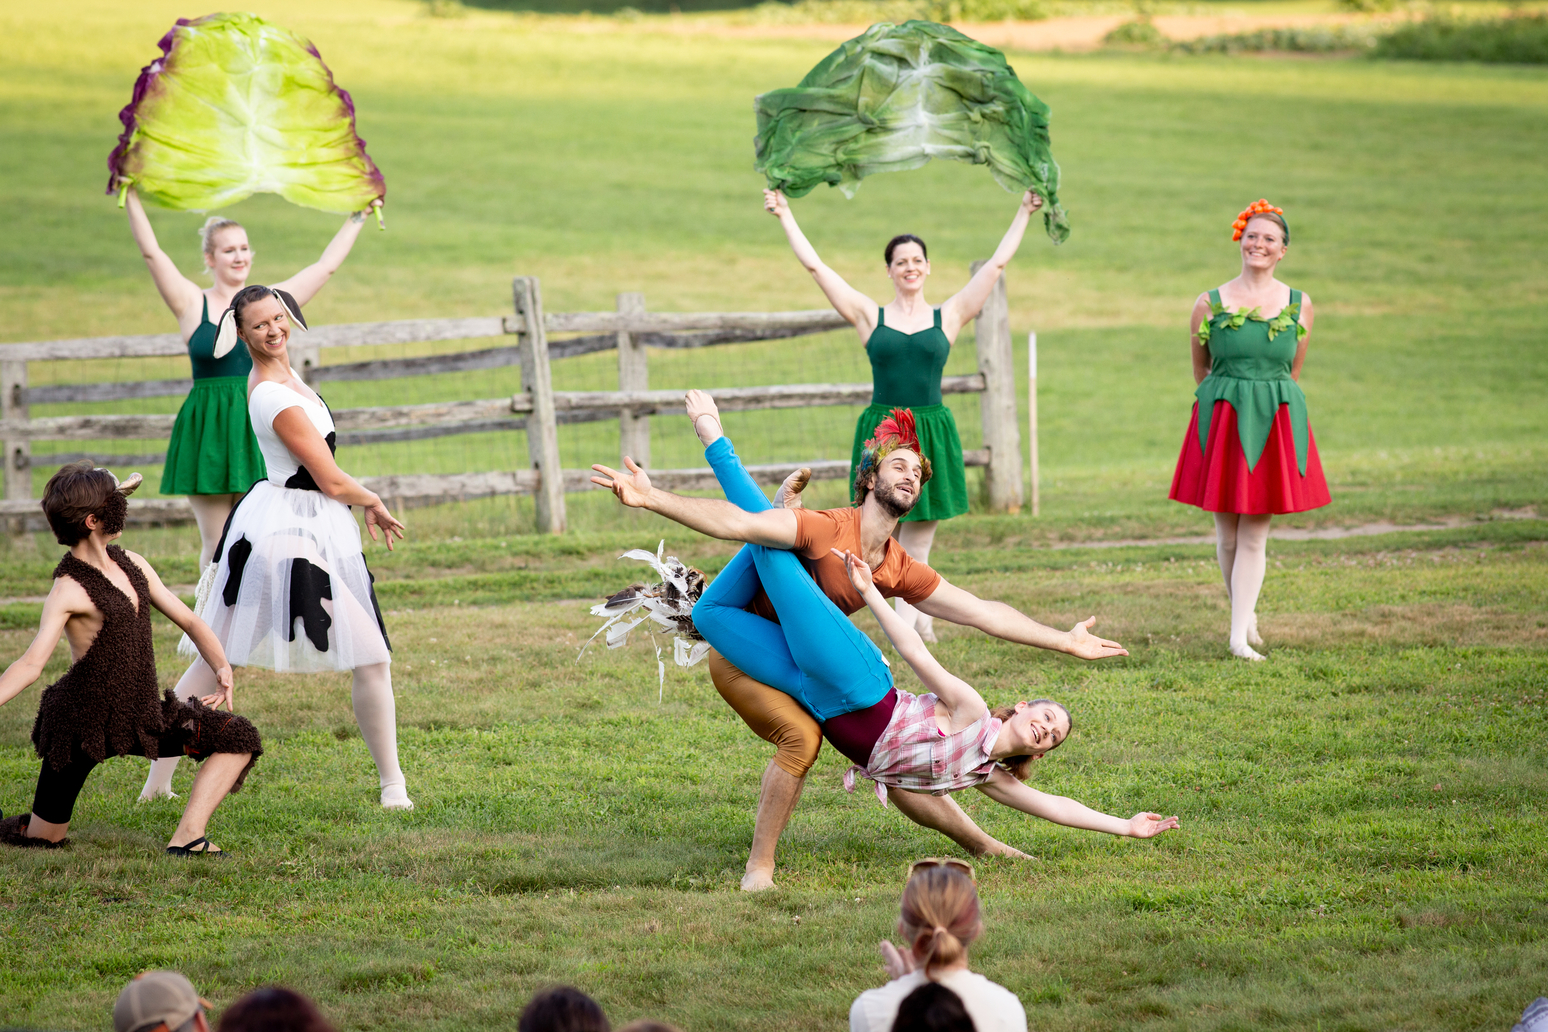 Ballet dancers on a farm doing a fish dive during a performance of the Farm to Ballet Project